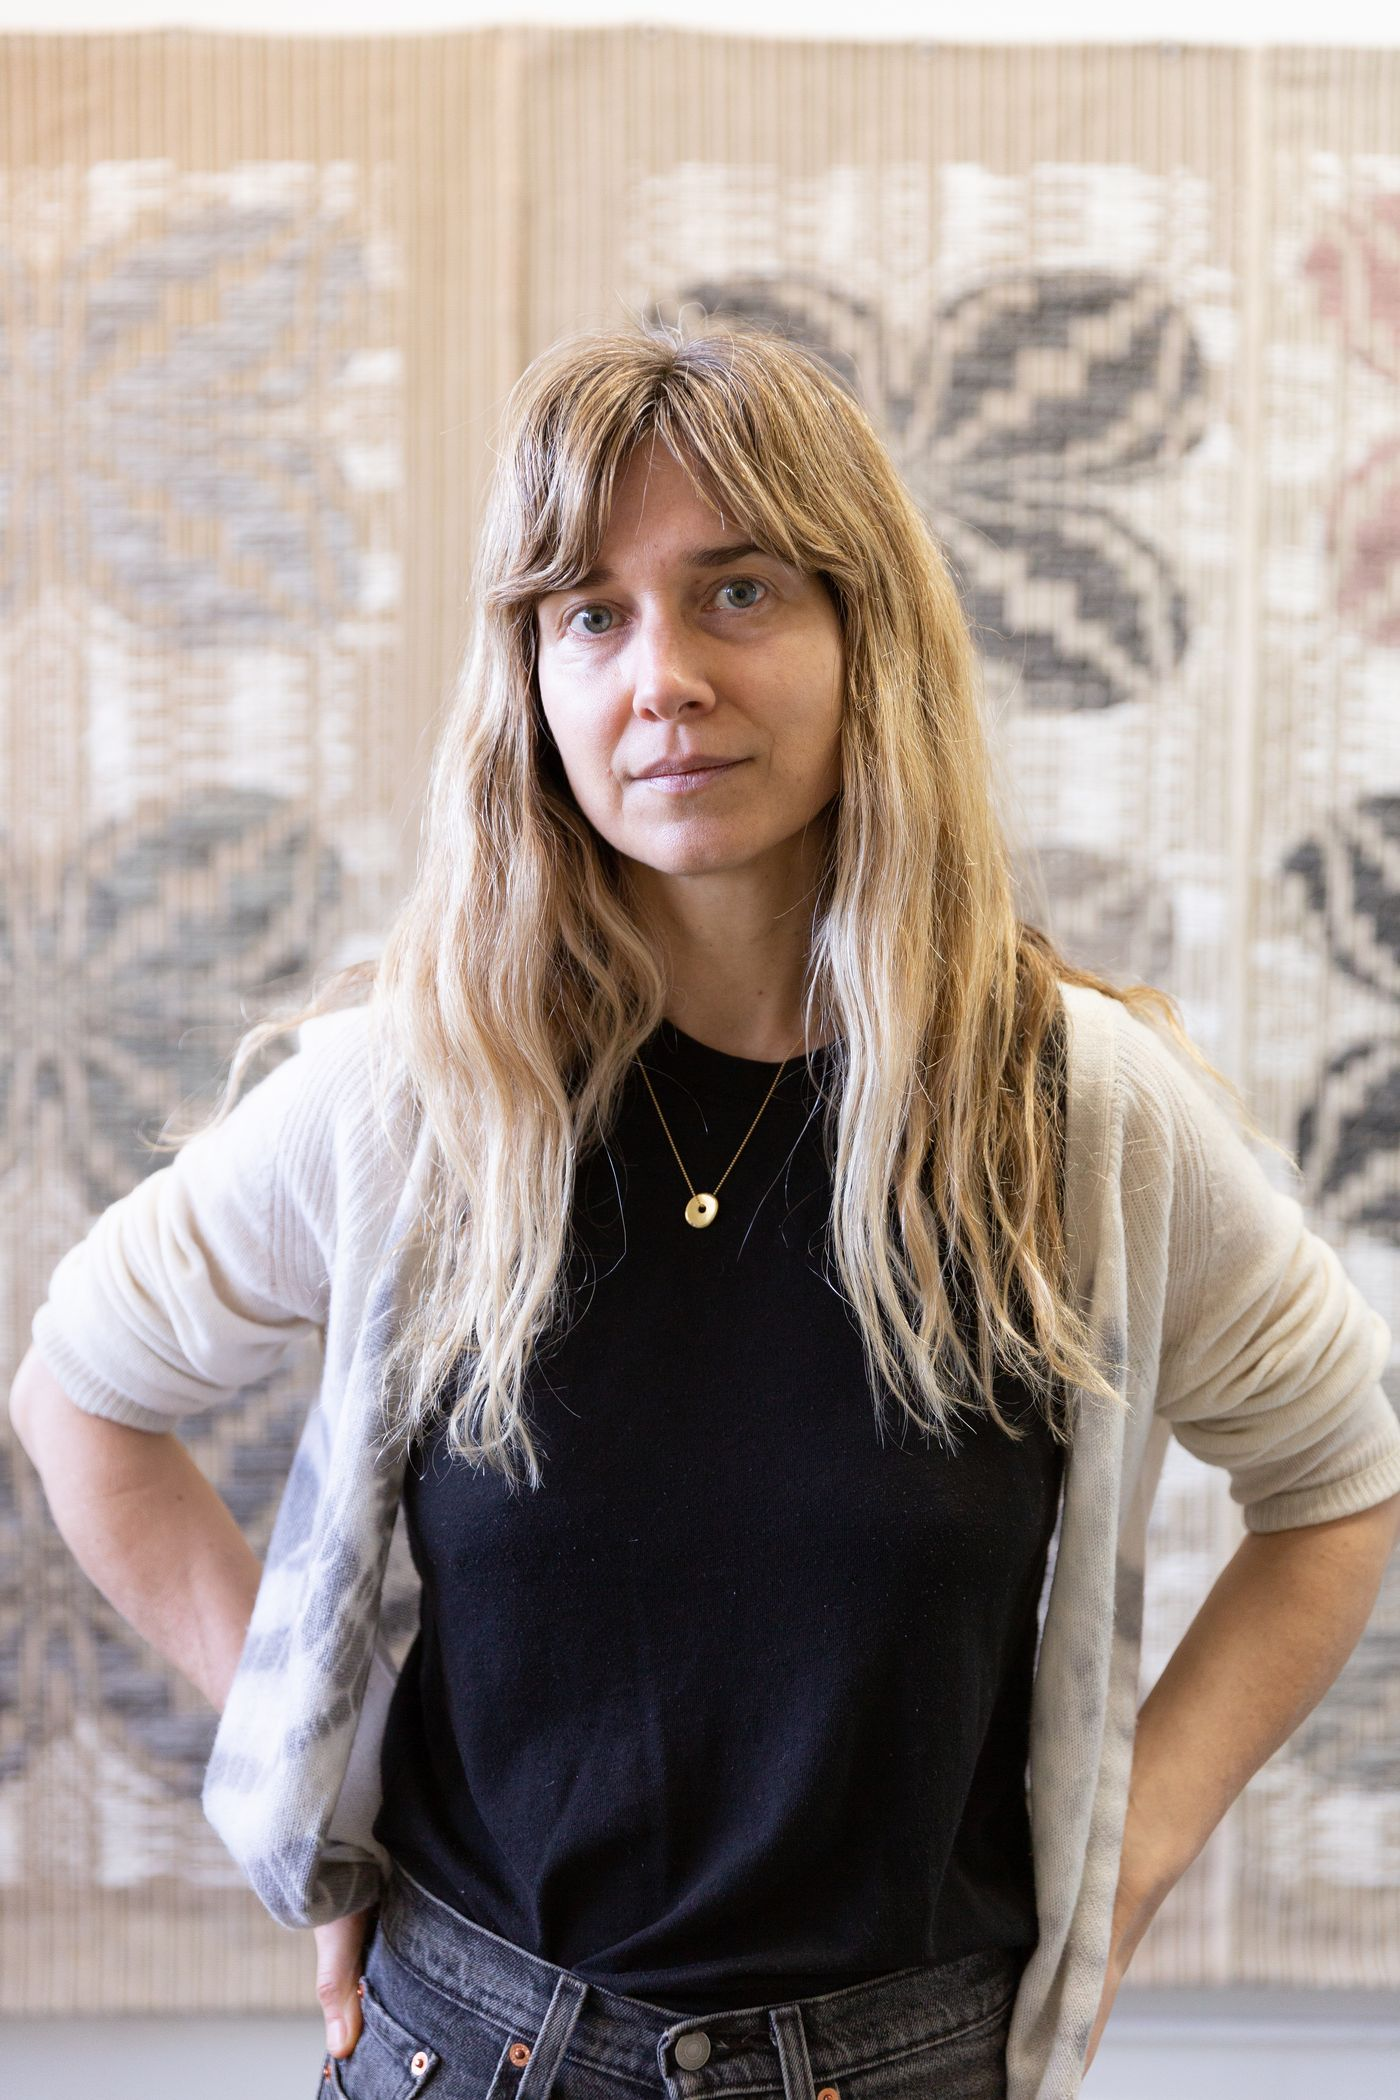 In the first installment of our new Design series, we speak with Los Angeles-based textile artist Christy Matson and learn more about her practice.